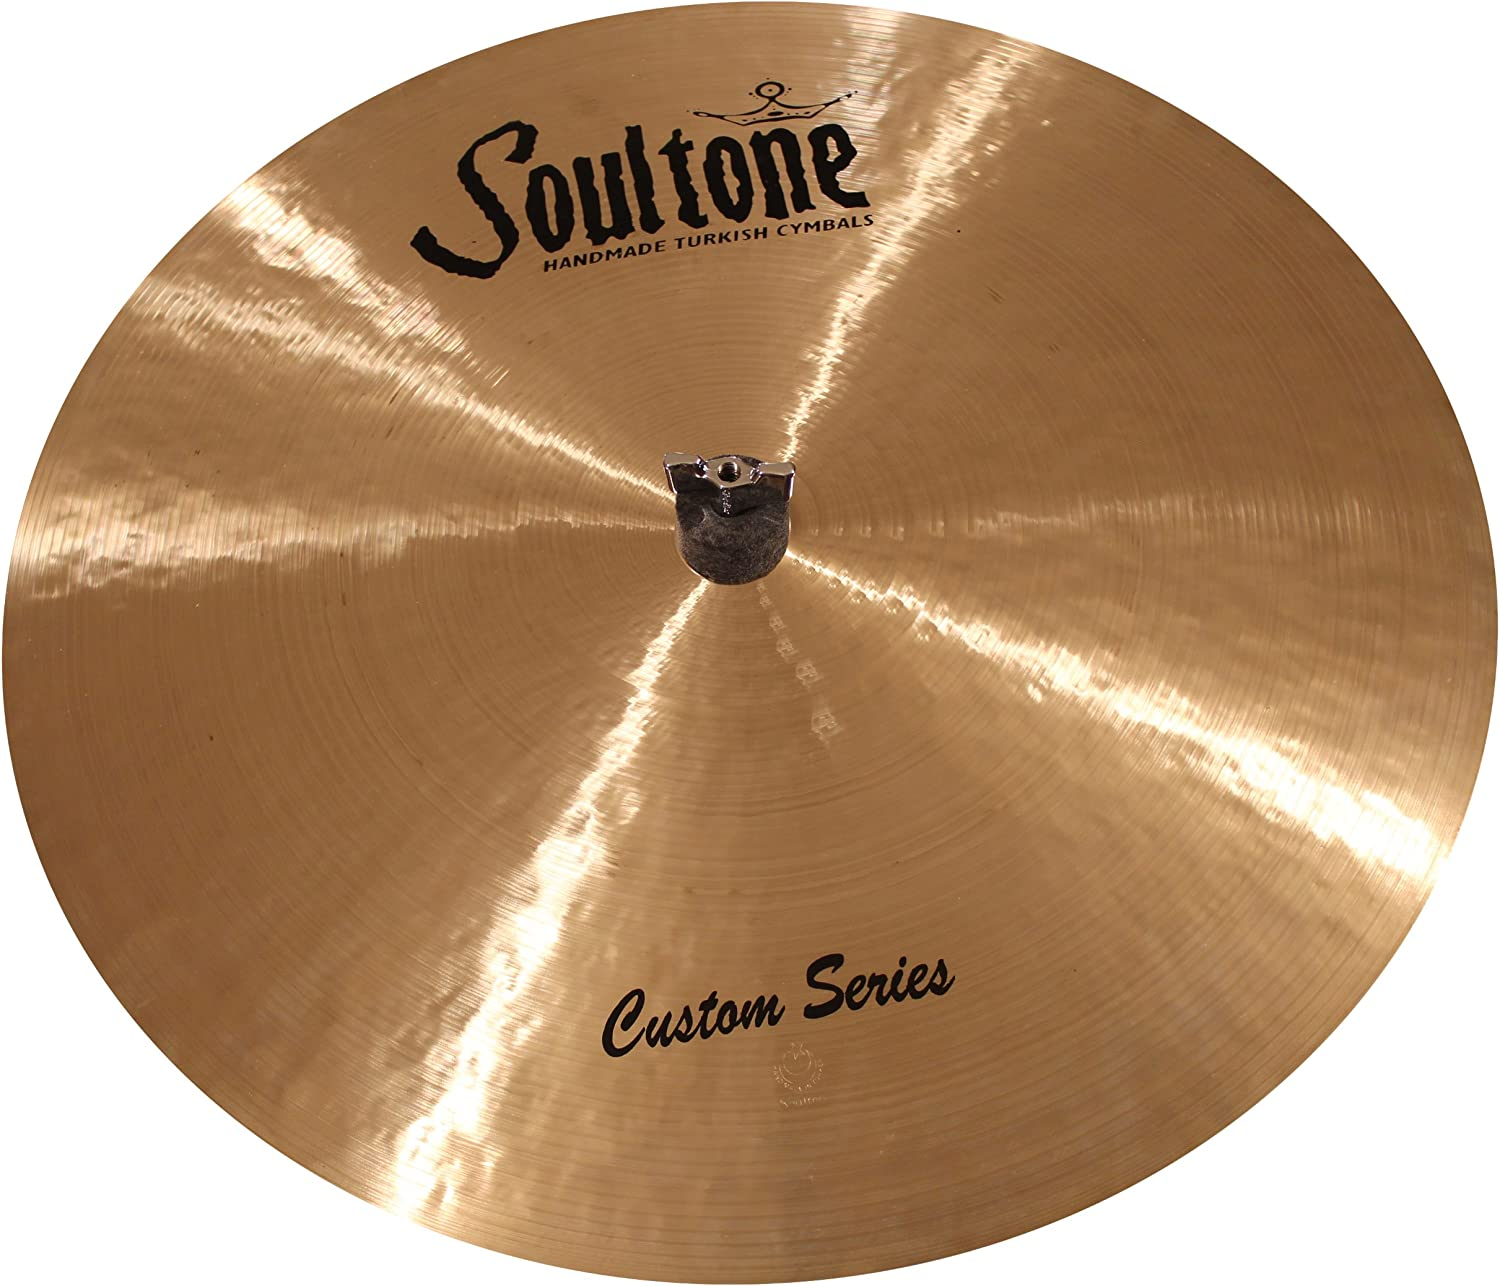 Selling and selling Soultone Cymbals CST-FLRID21-21